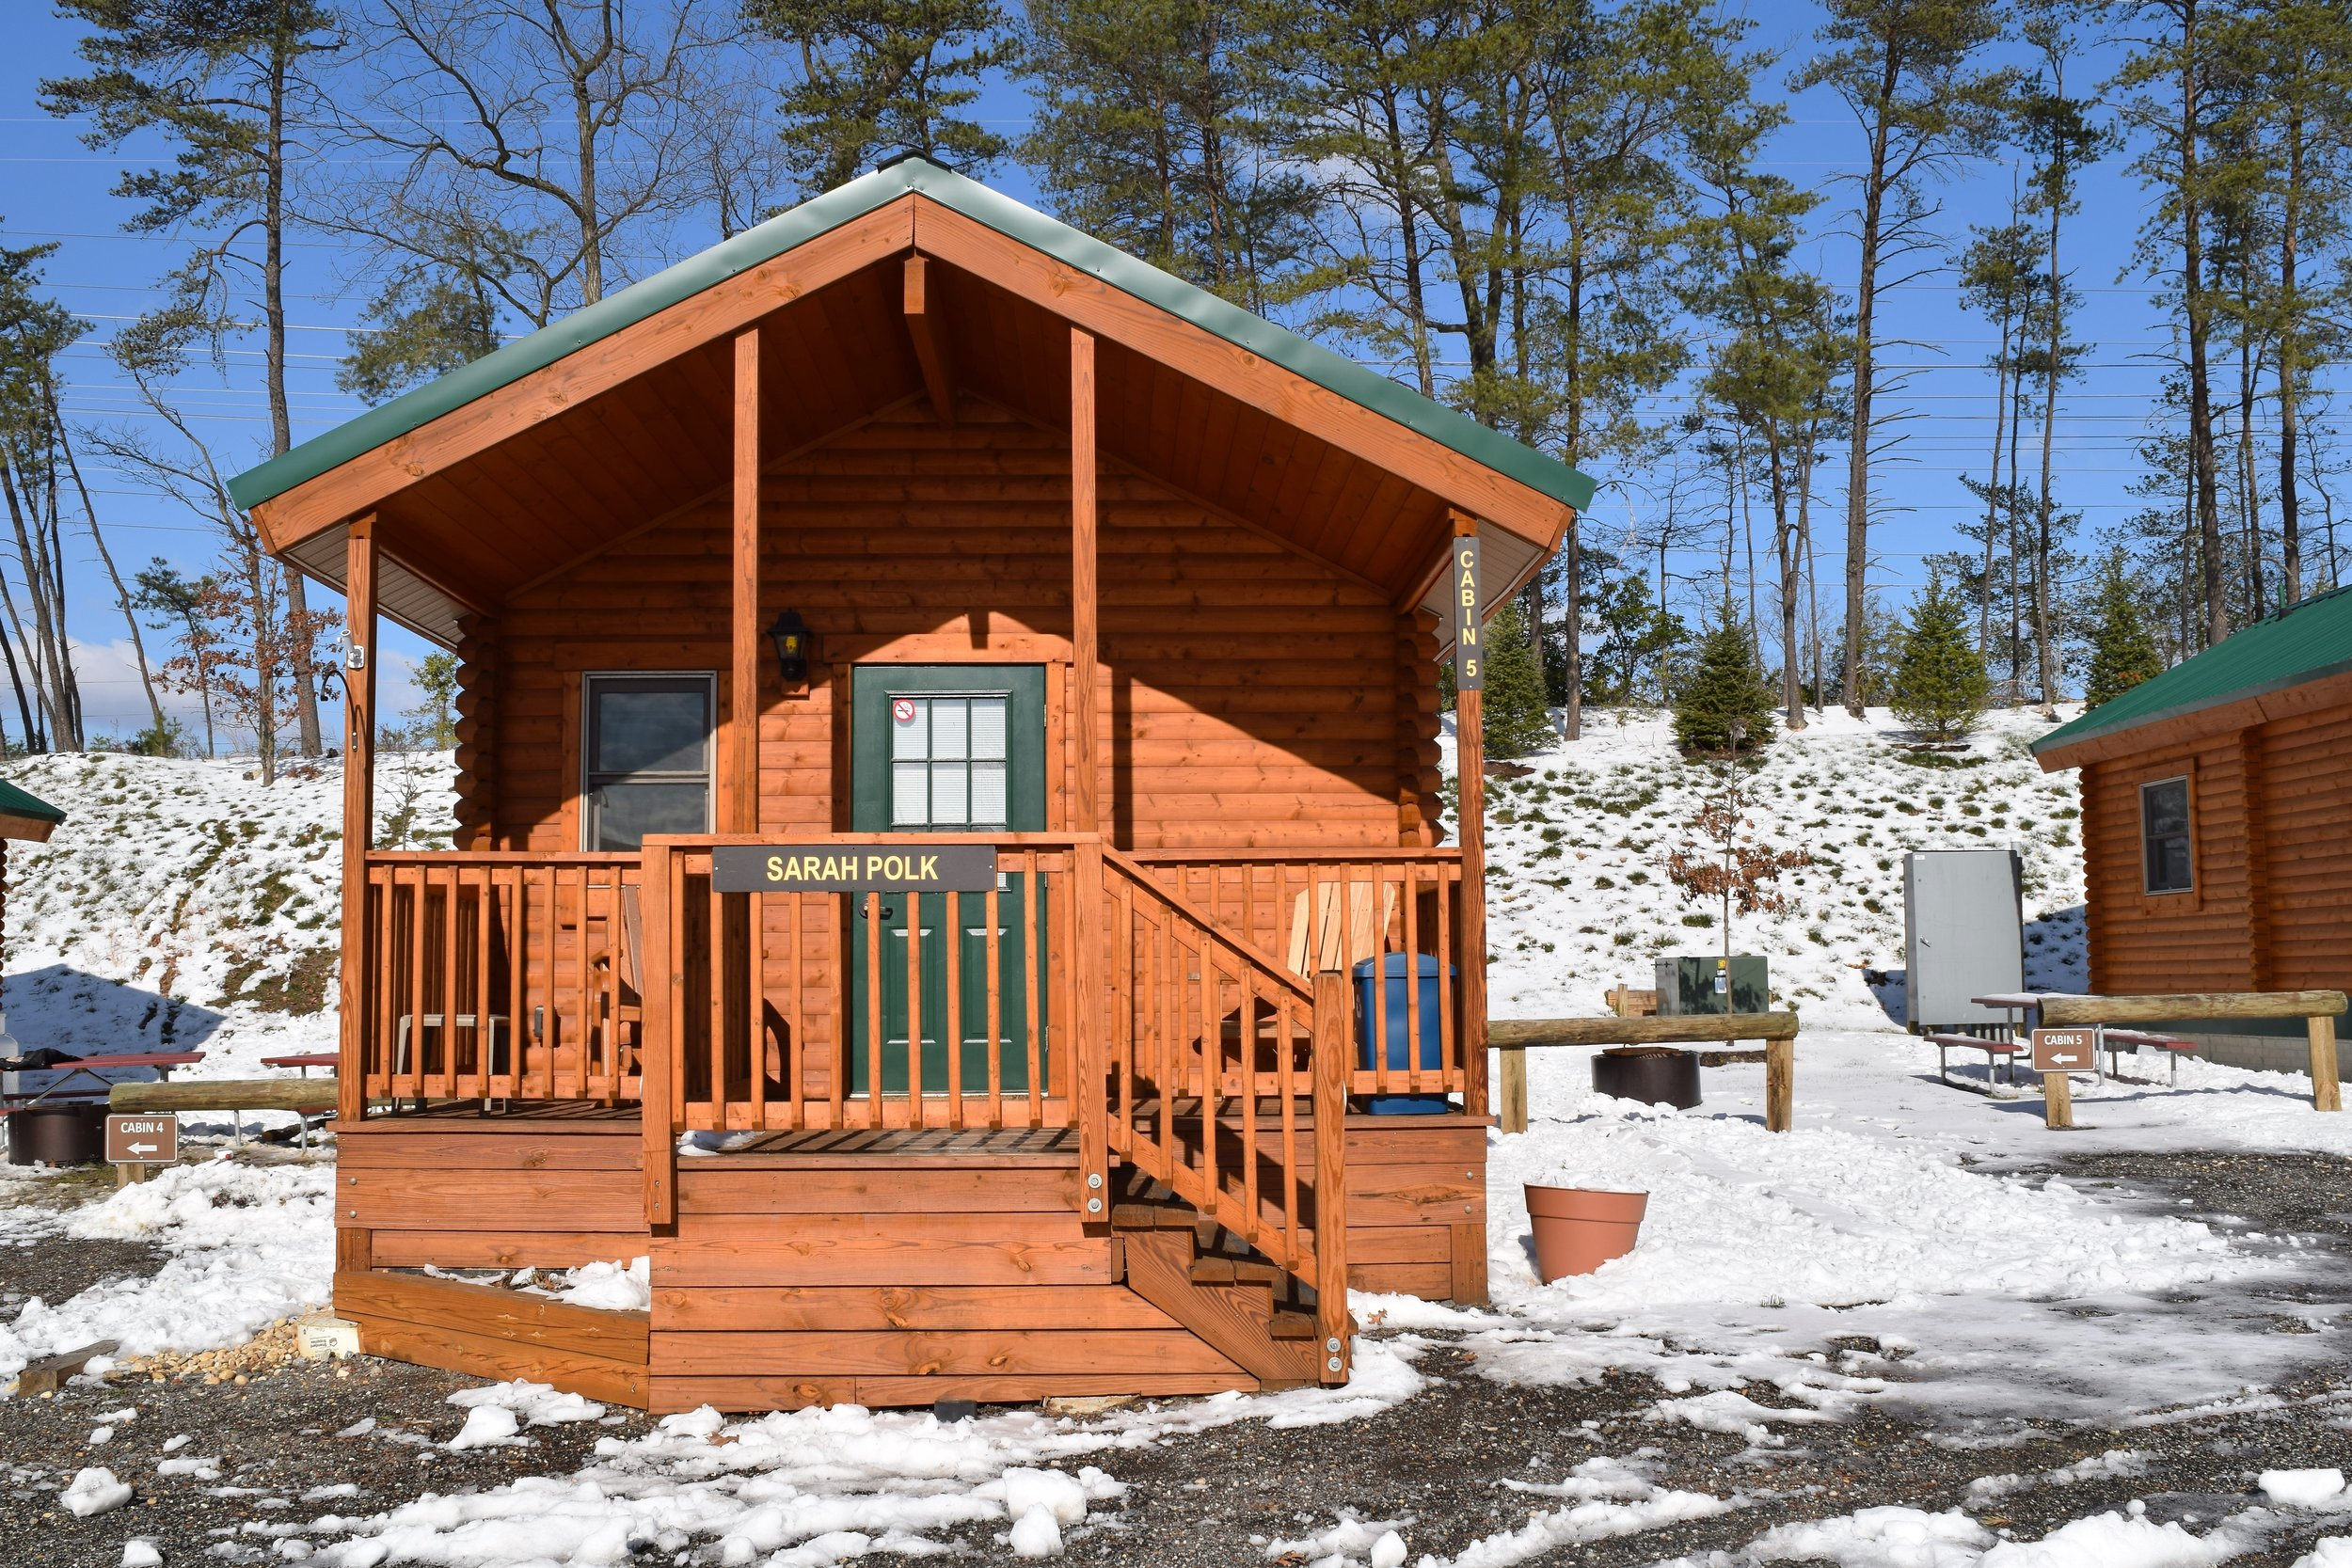 Premium Log Cabin Front View in Winter Snow